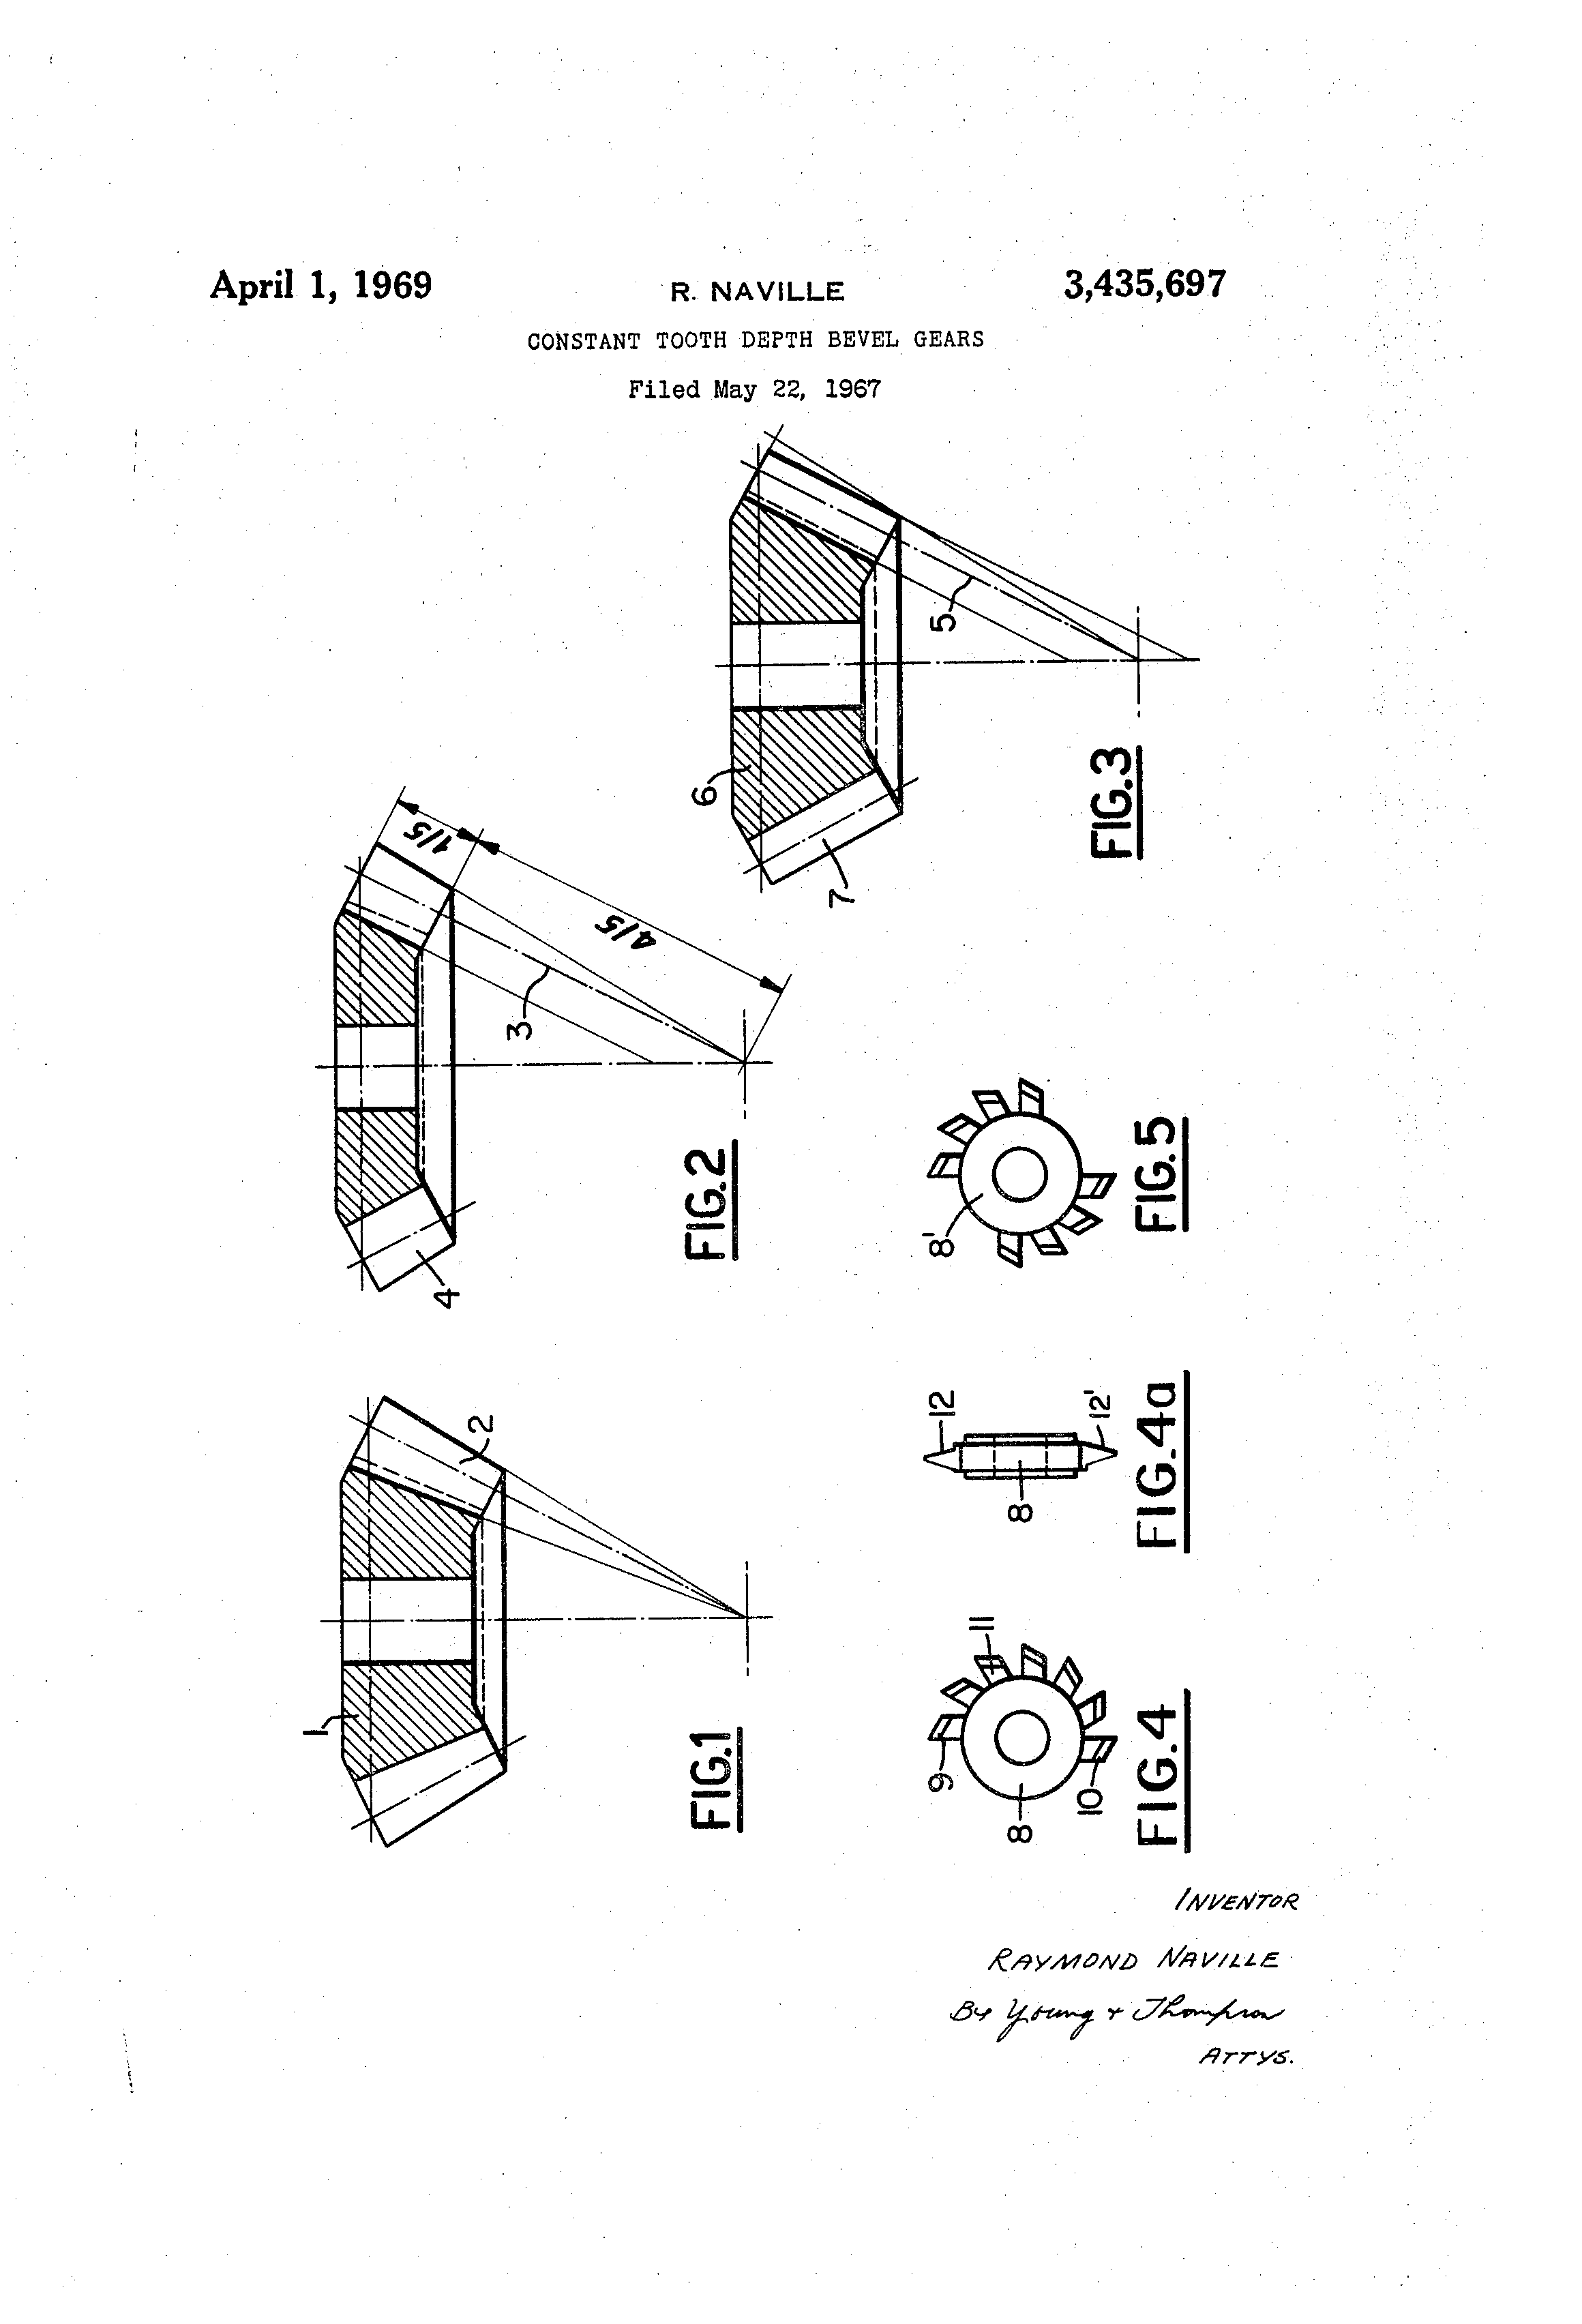 Patente us3435697 constant tooth depth bevel gears patentes do patent drawing ccuart Gallery